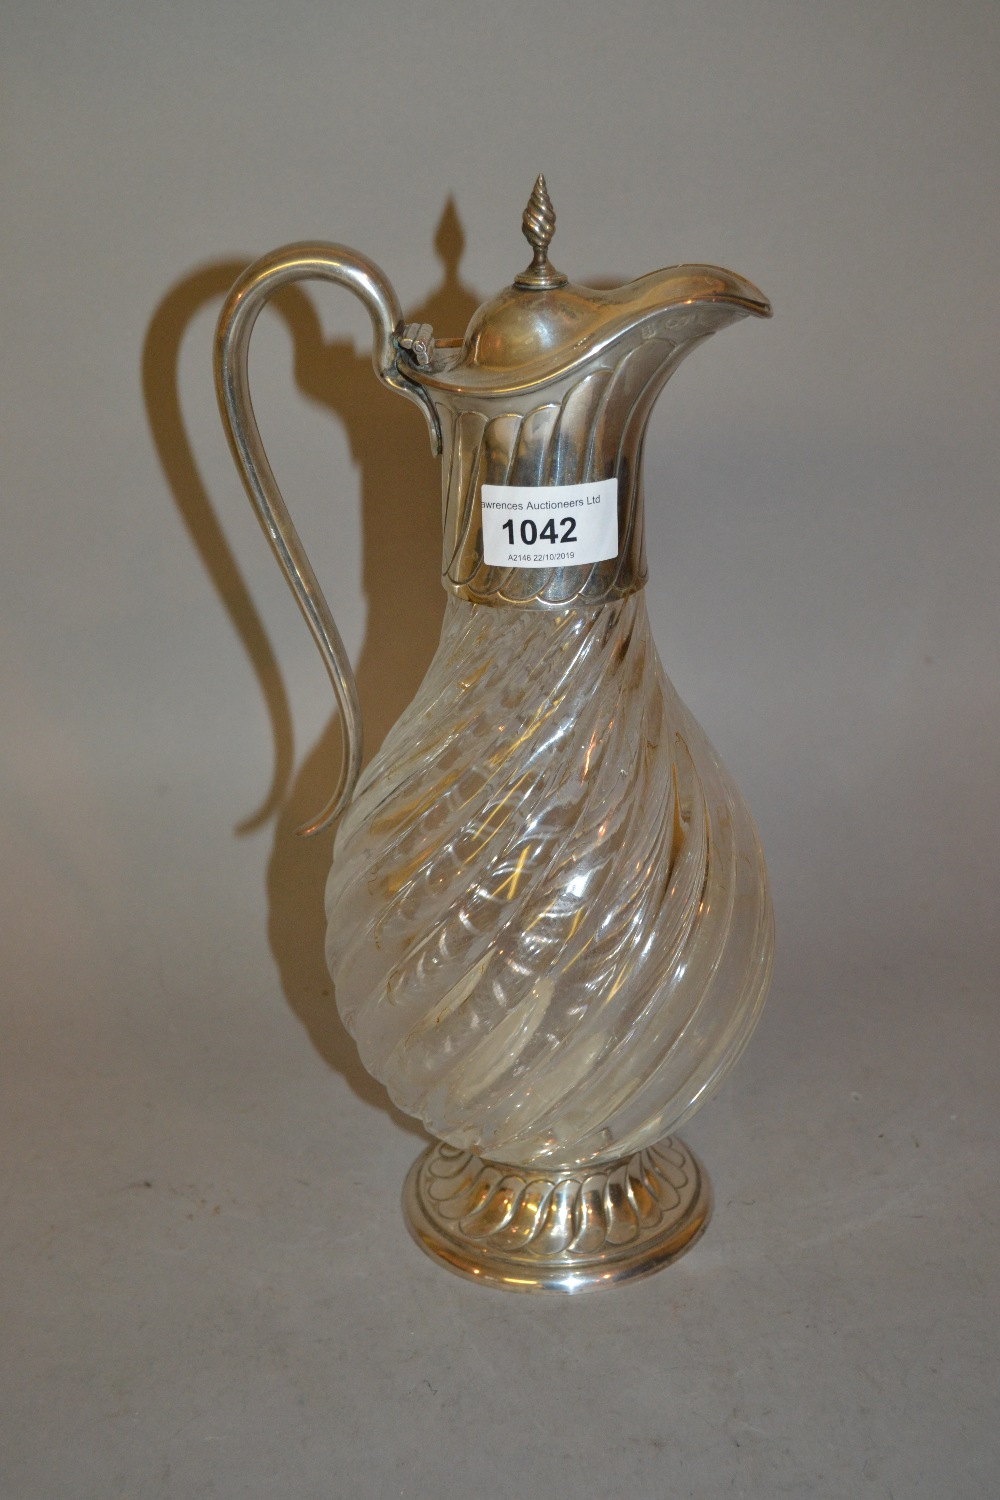 Lot 1042 - London silver mounted claret jug with a spiral fluted body, hinged lid and scroll handle